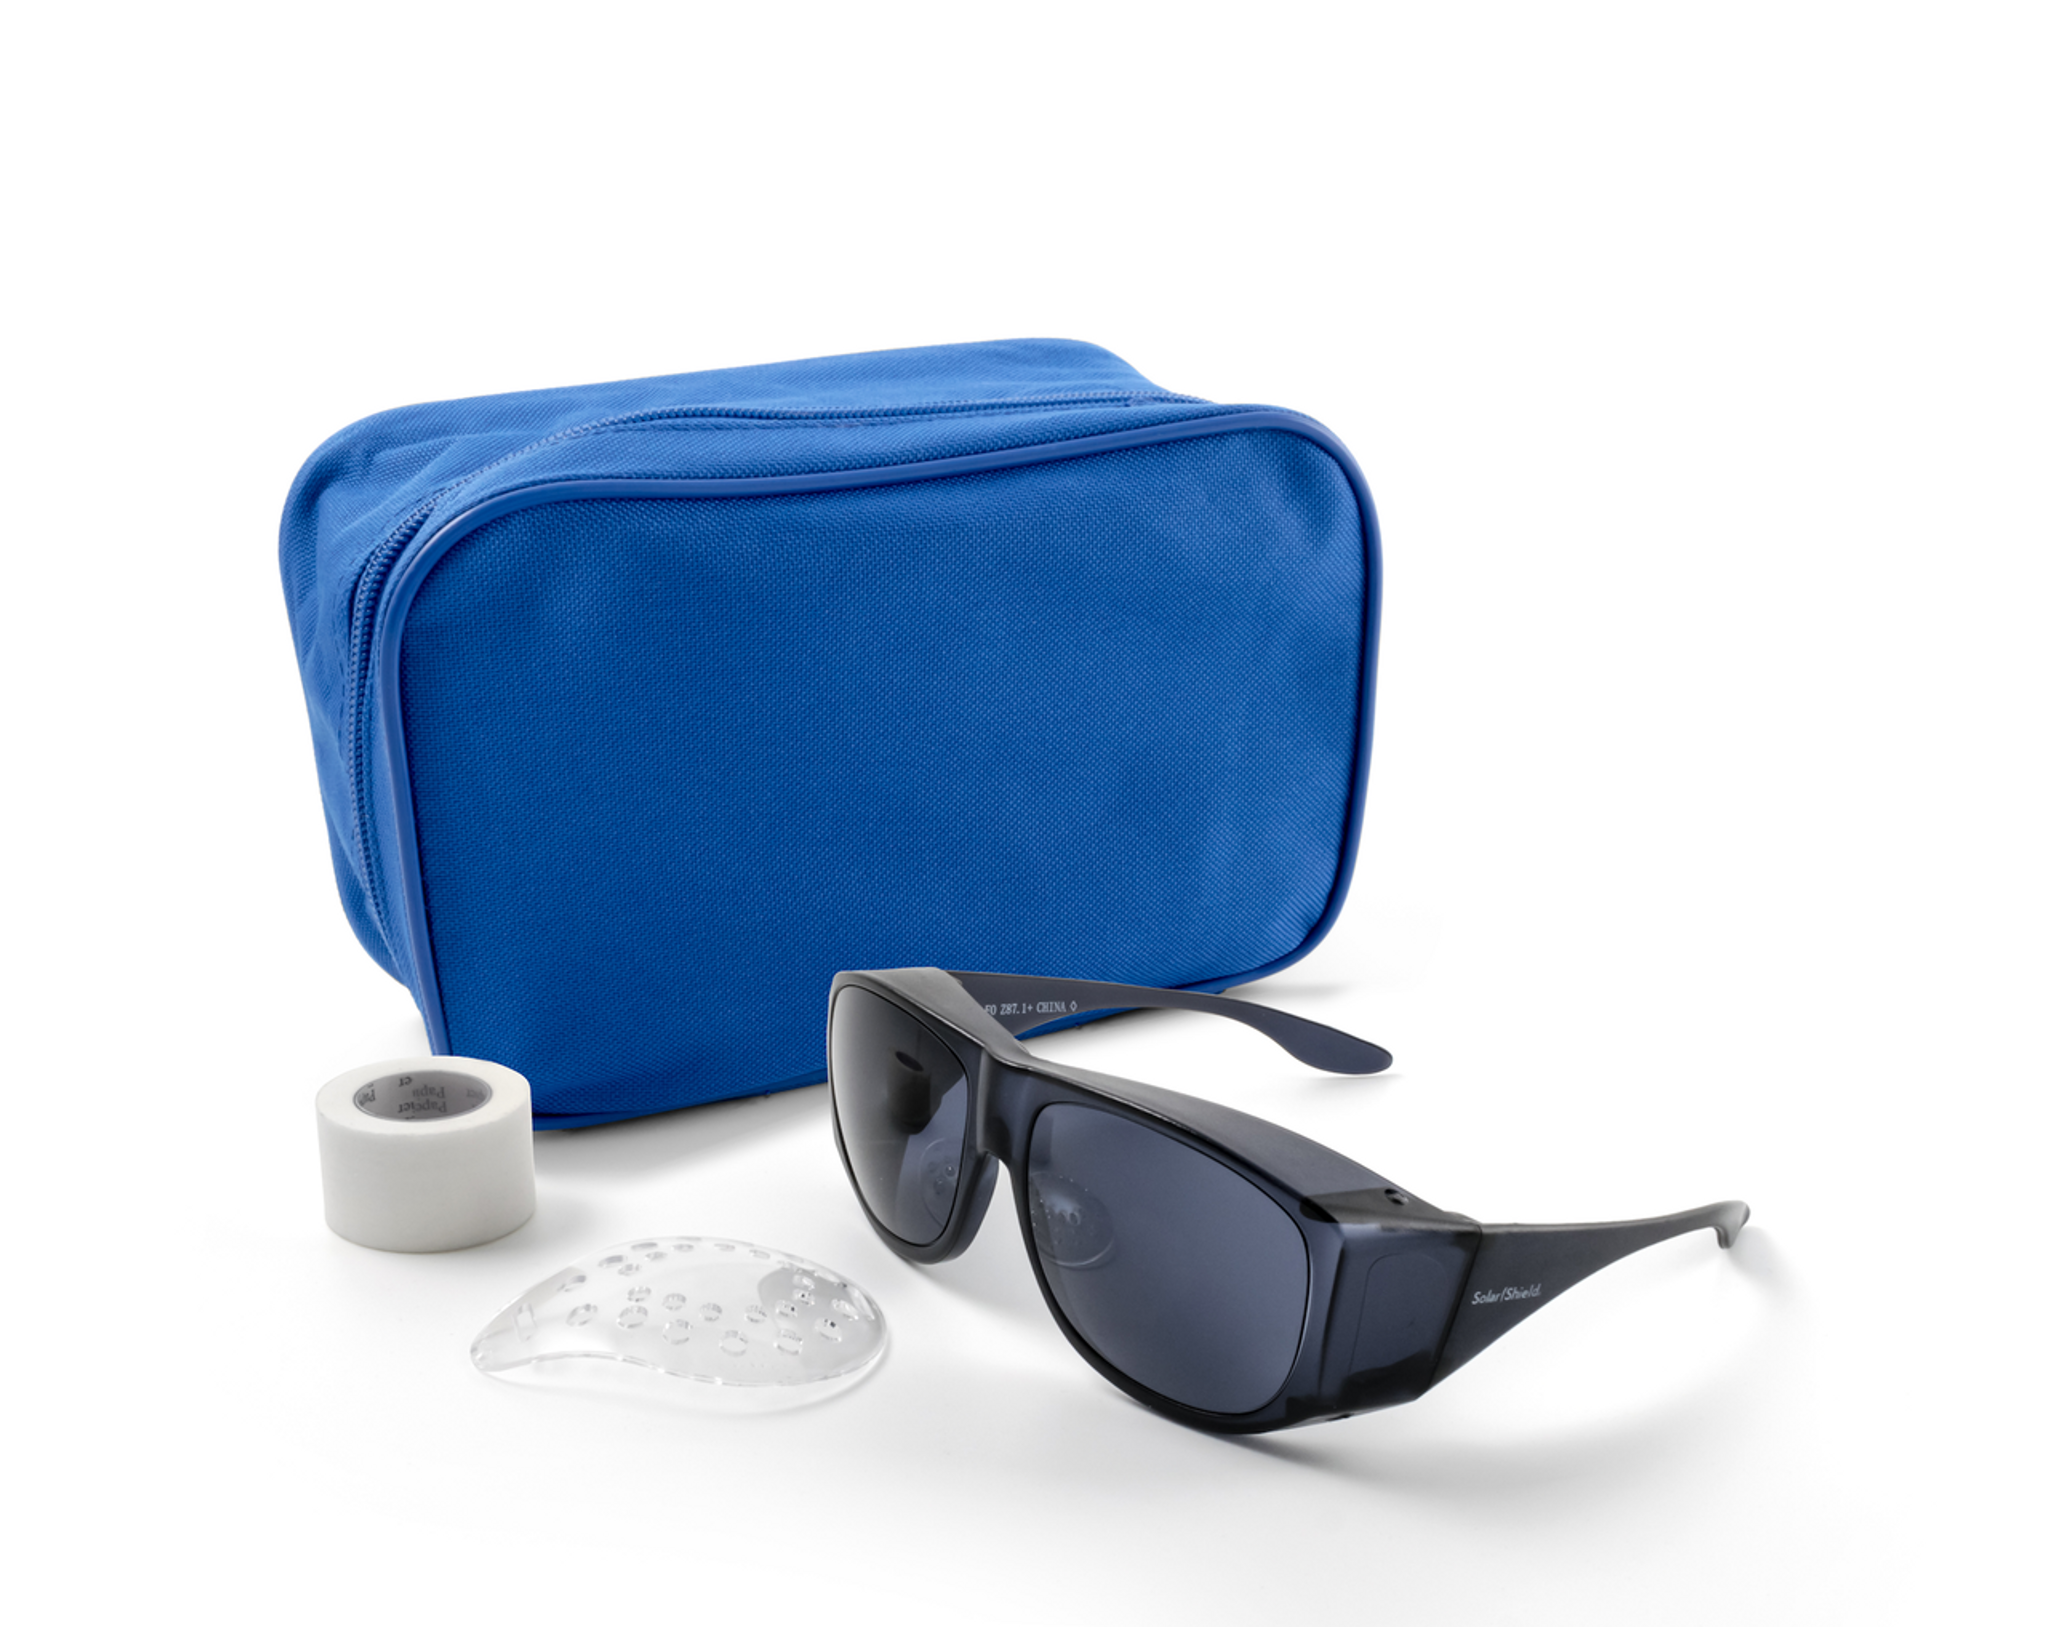 61074adc35 ... Premium Zippered Bag - Cataract Post-Op Kit ...